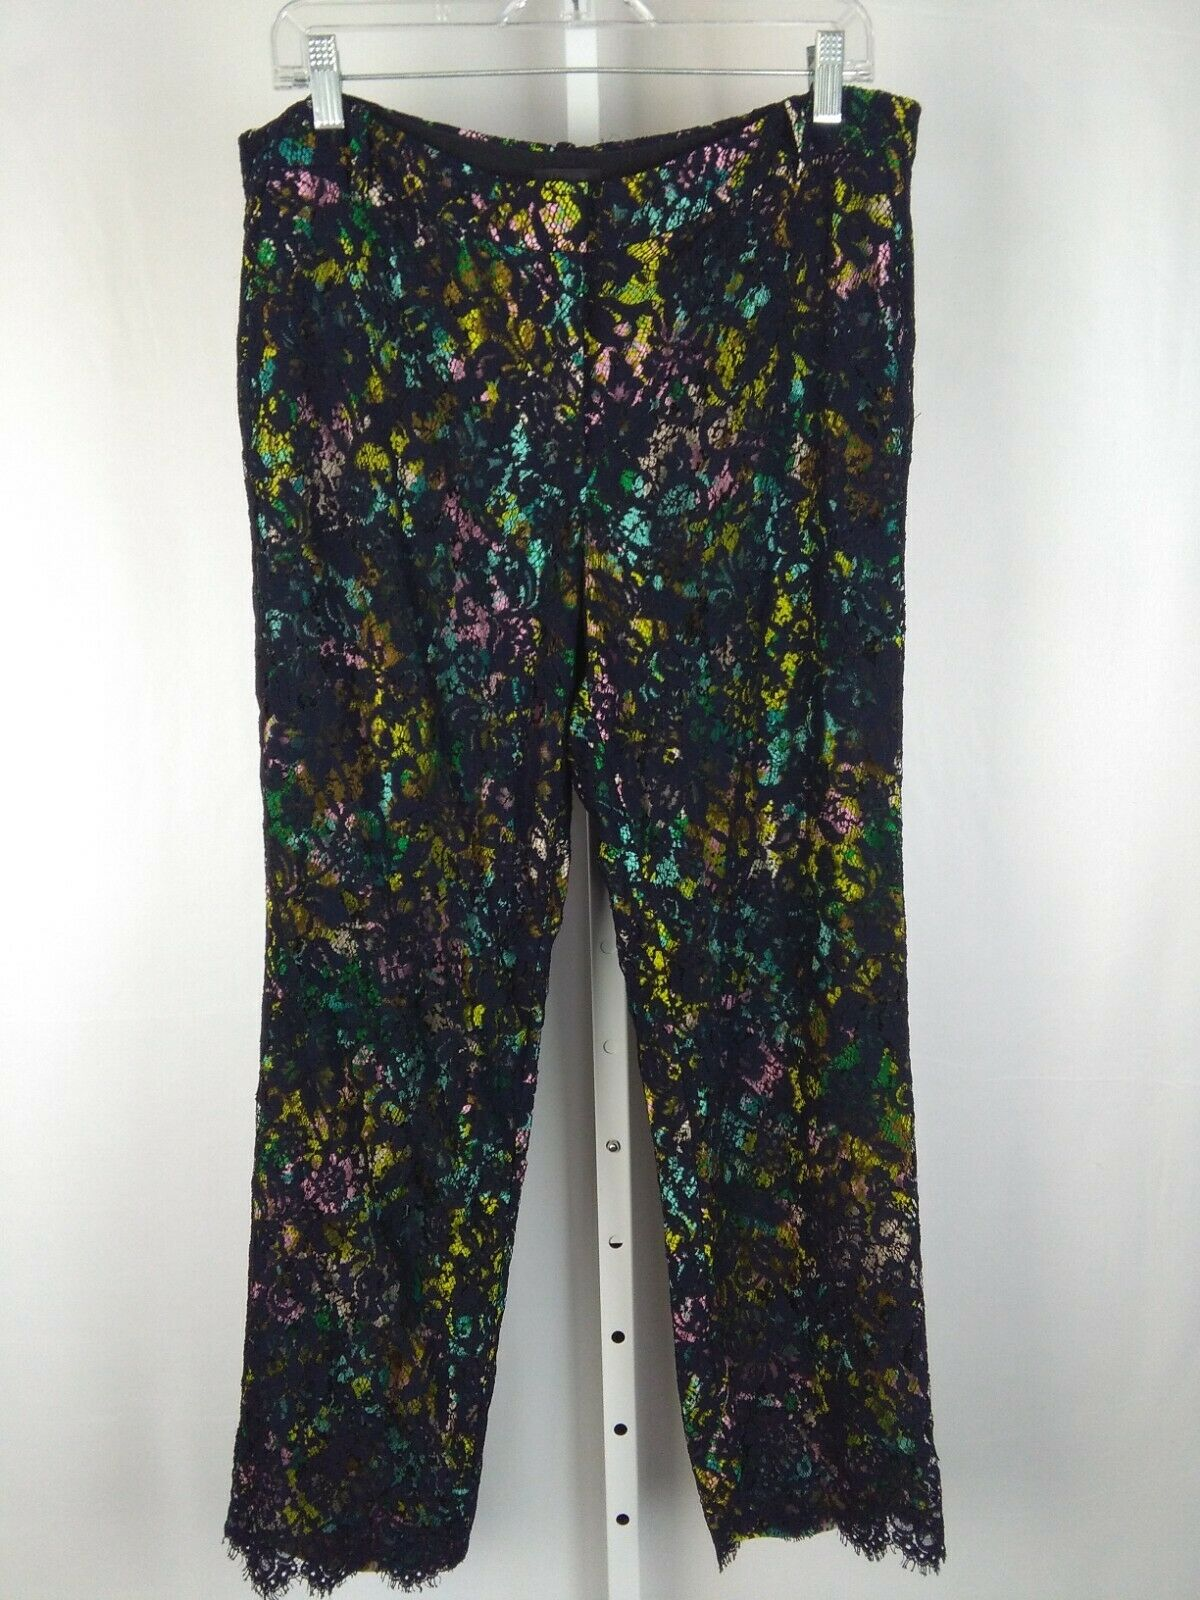 J.CREW COLLECTION Size 12 Navy Lace and Multicolor Lining Pants